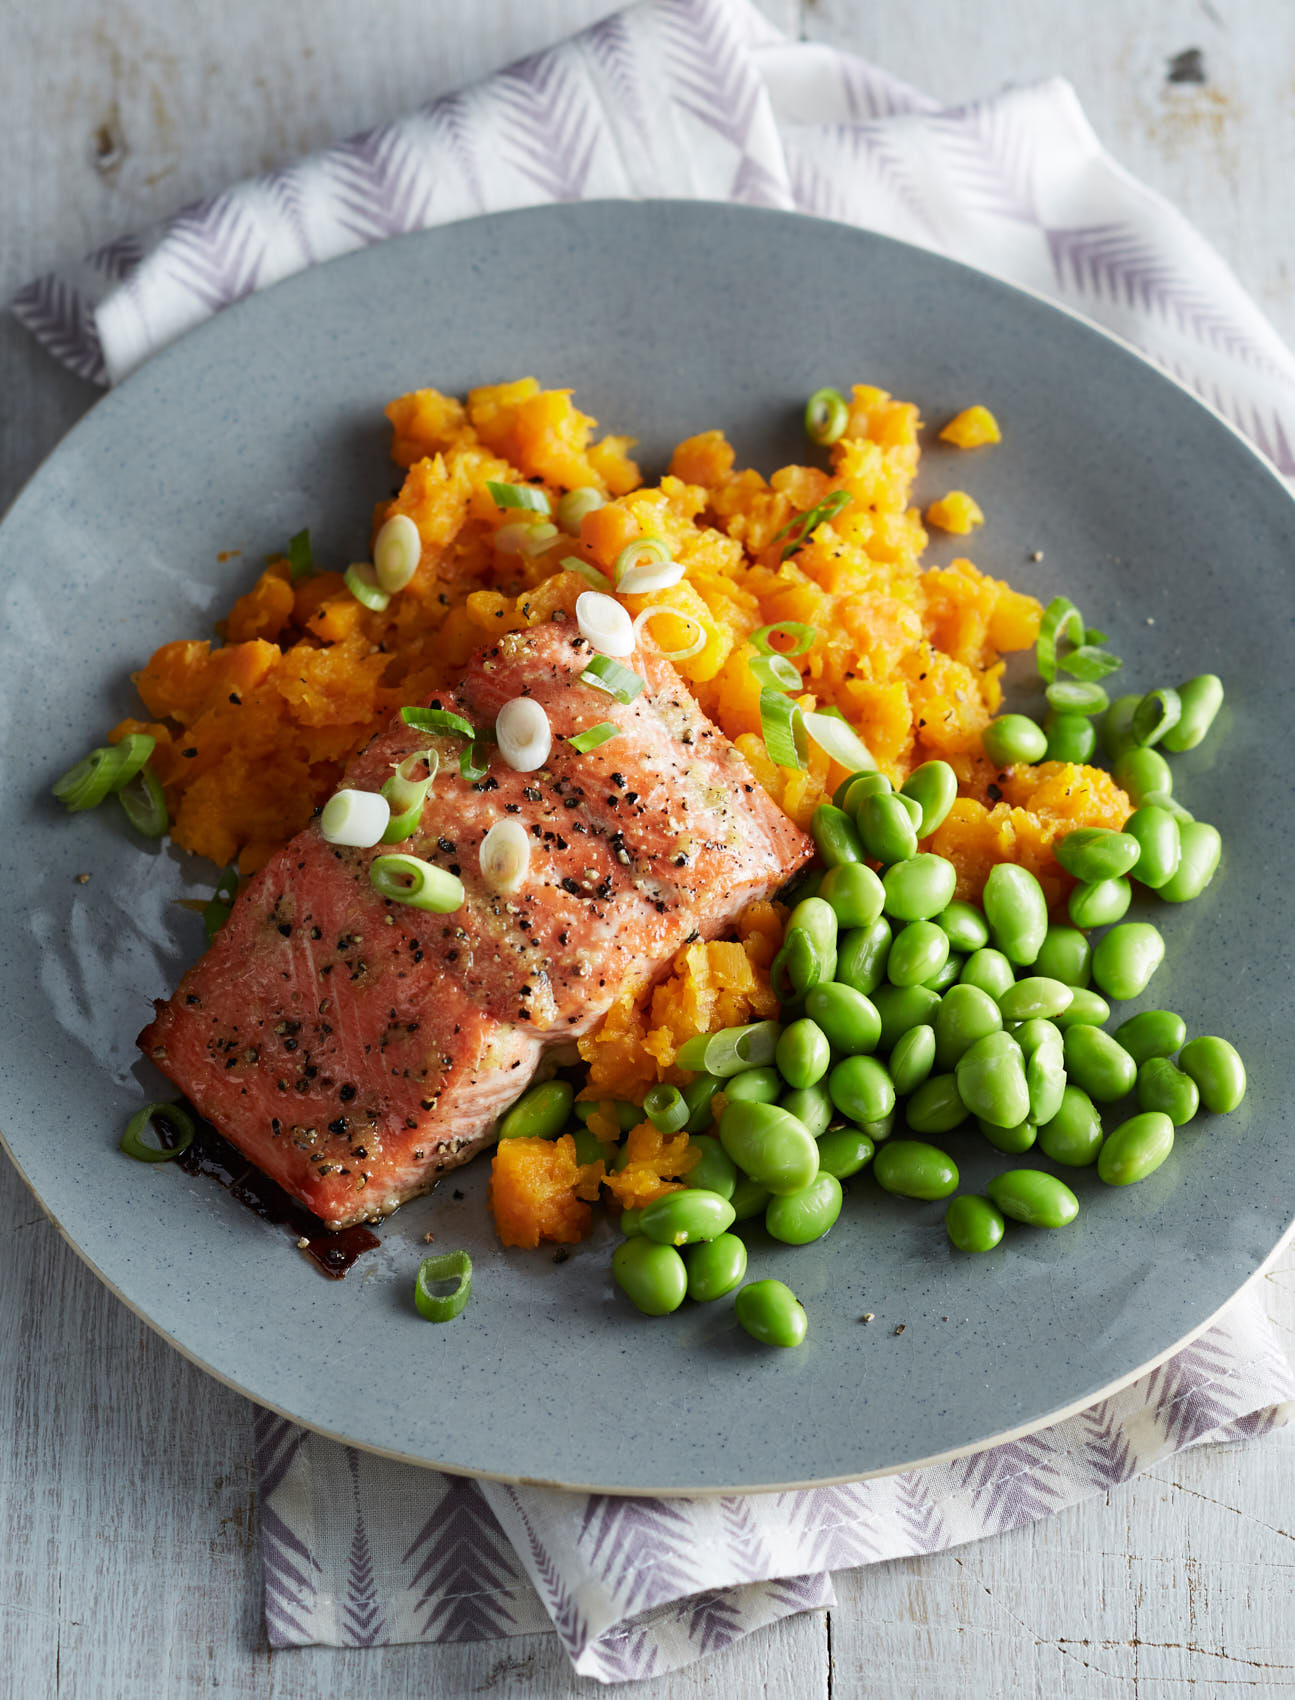 maple-ginger-salmon-and-carrots-16840-6142455-w